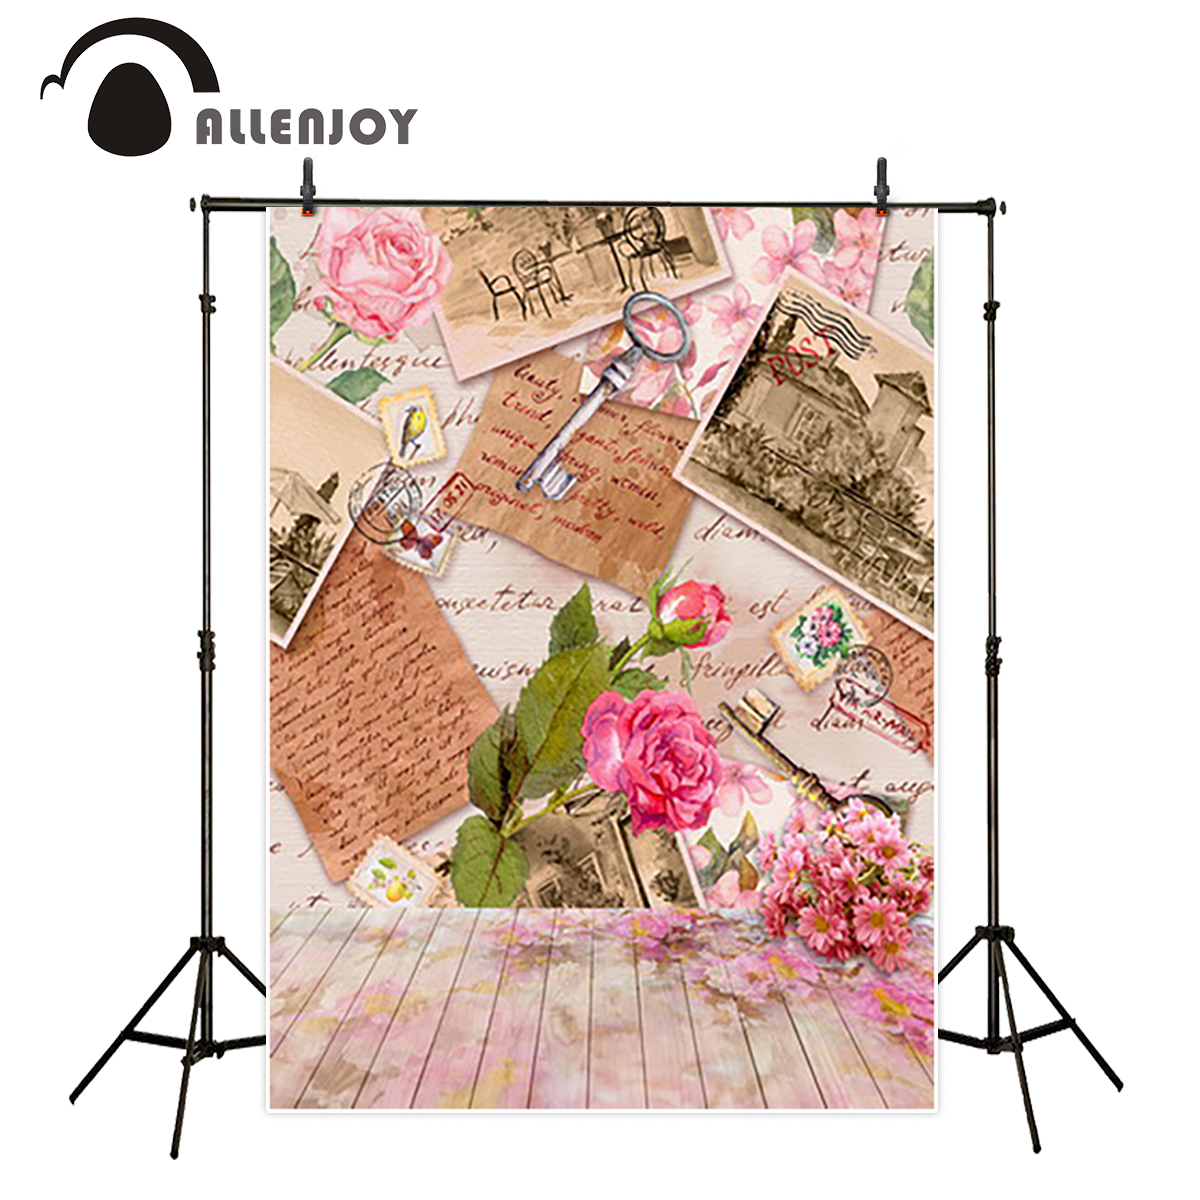 Allenjoy vinyl backdrops for photography backdrop Flowers vintage key letter background vinyl Studio photo backgrounds allenjoy photography backdrops valentine s day love colourful heart wedding background for studio photo backdrop vinyl